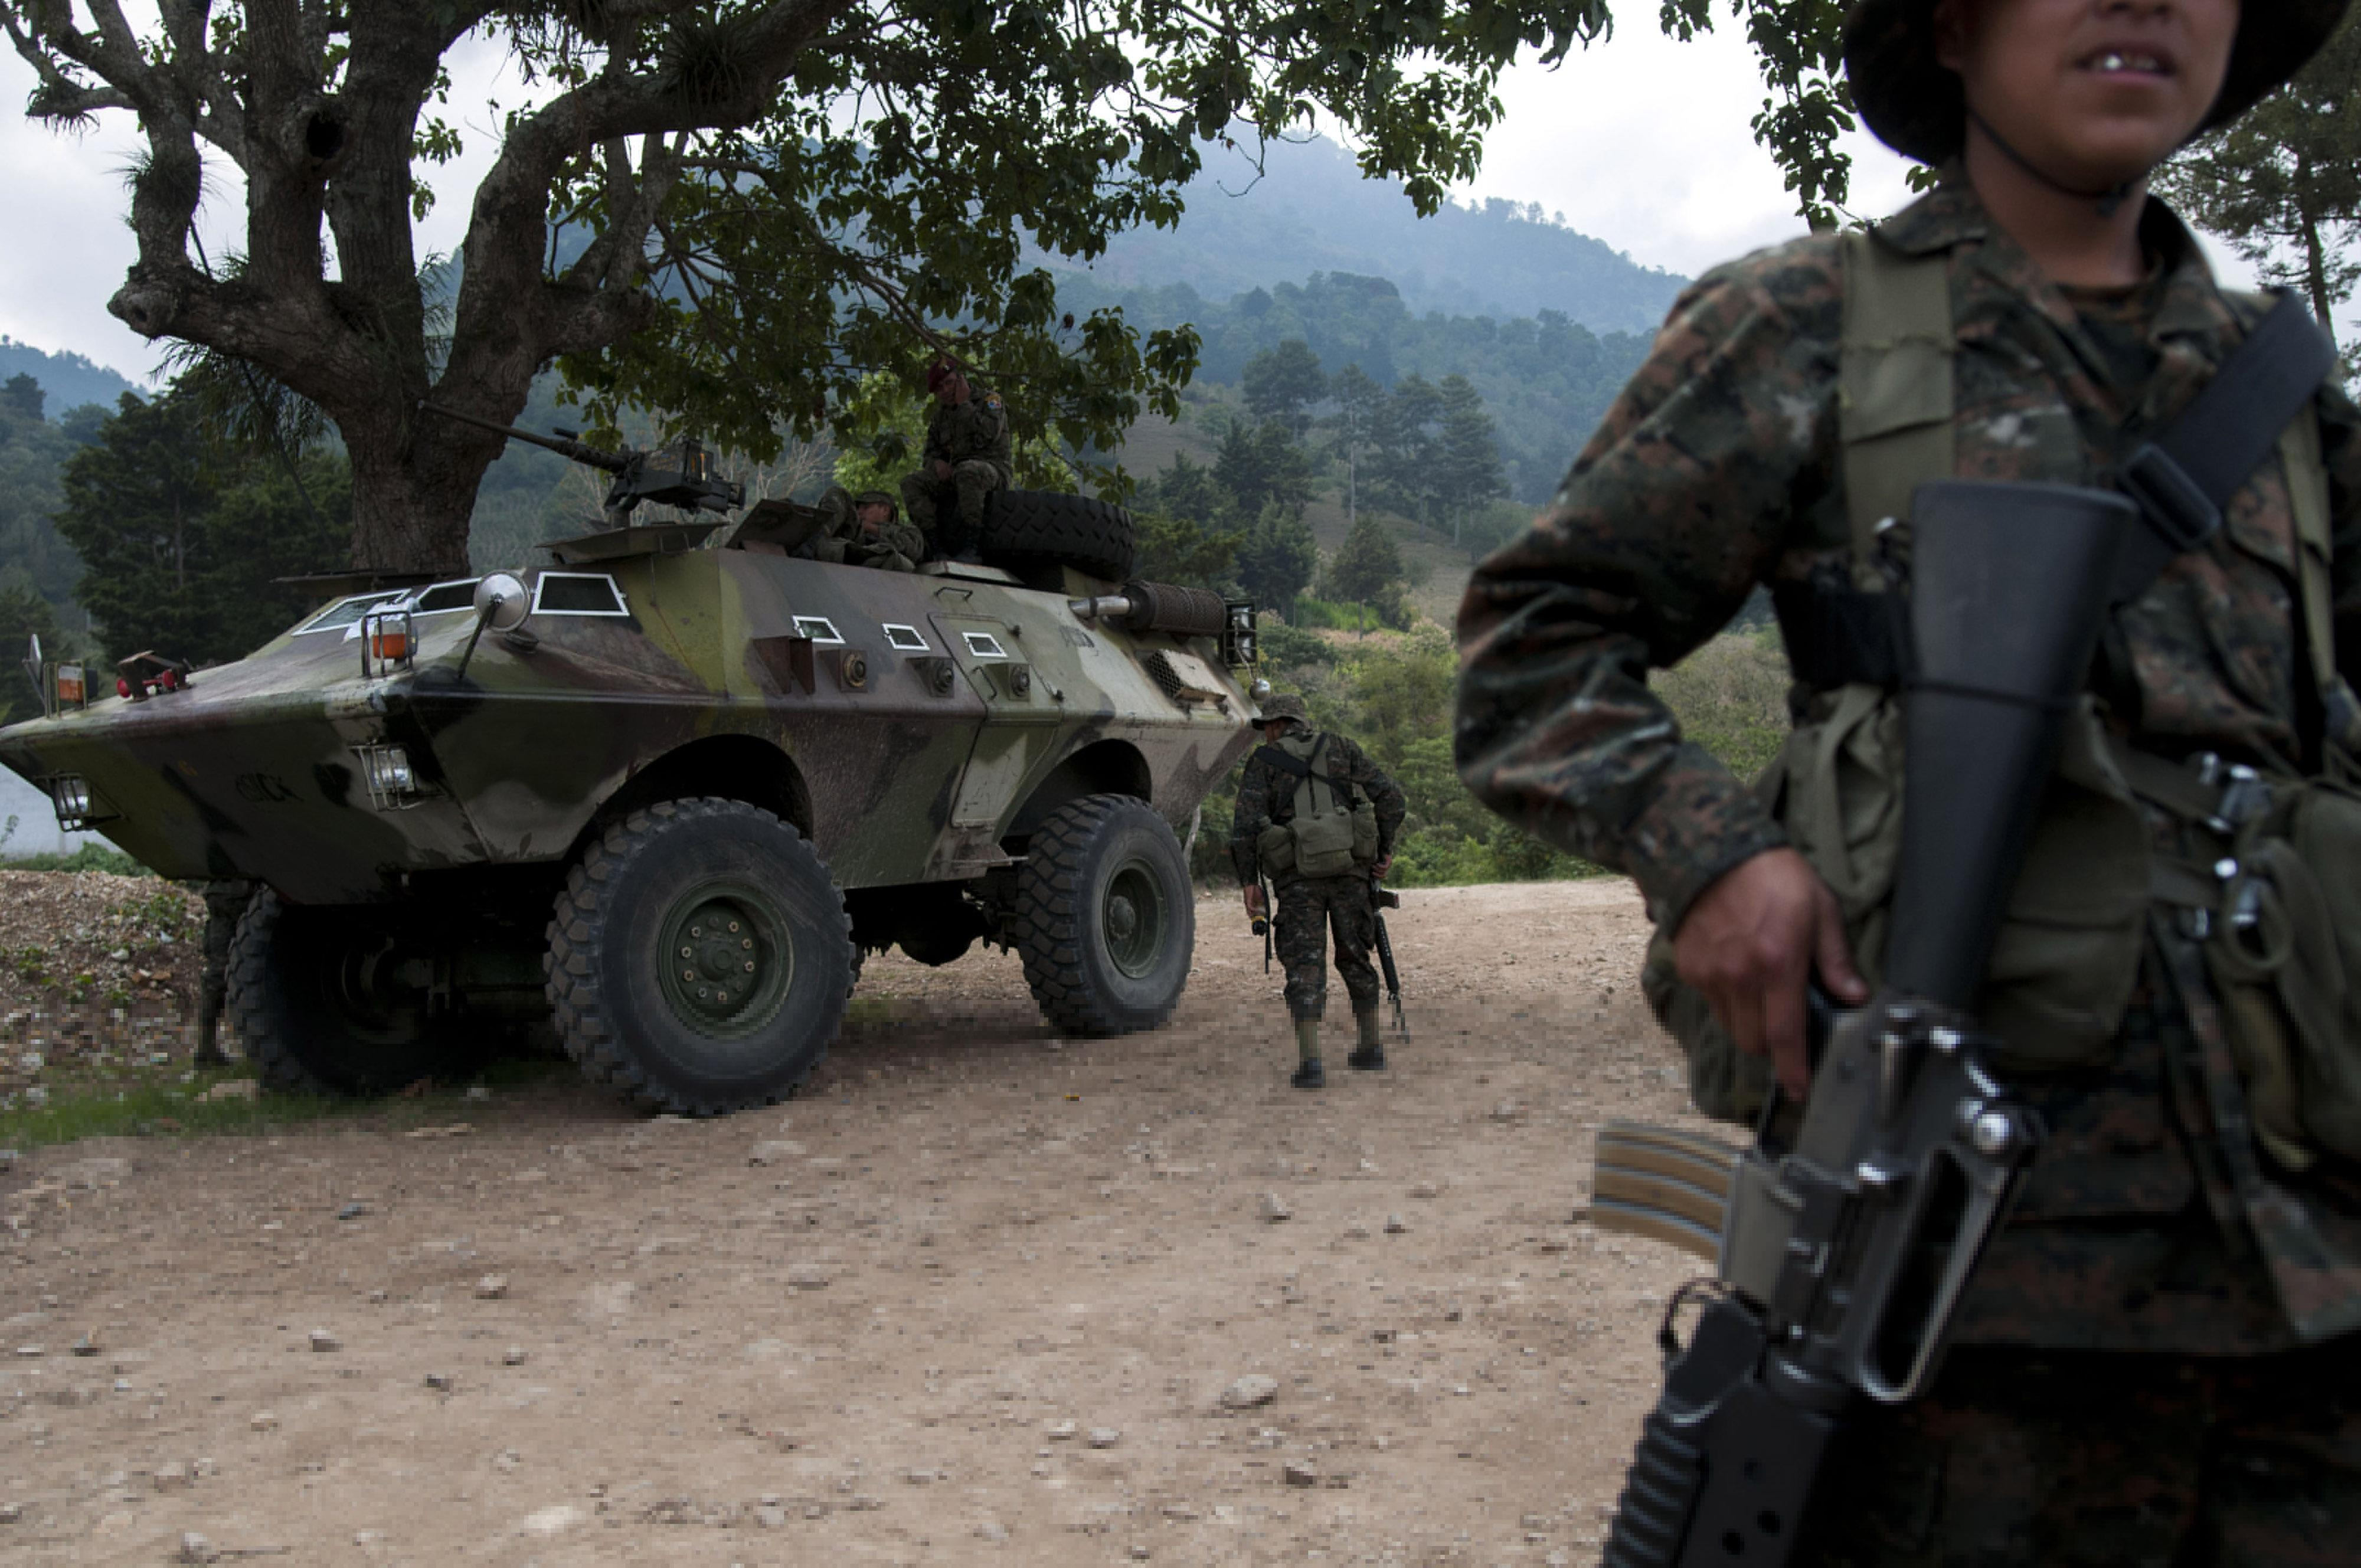 Soldiers patrol in San Rafael Las Flores, Guatemala, Thursday, May 2, 2013. Guatemala's government declared a state of emergency and banned public gatherings Thursday in four townships east of the capital following several days of violent clashes between police and anti-mining protesters. The government sent in 500 police officers and 2,000 soldiers, some in armored personnel vehicles. It said protesters were armed with guns and explosives. Clashes have involved police, mine security guards and local protesters. (AP Photo/Luis Soto)